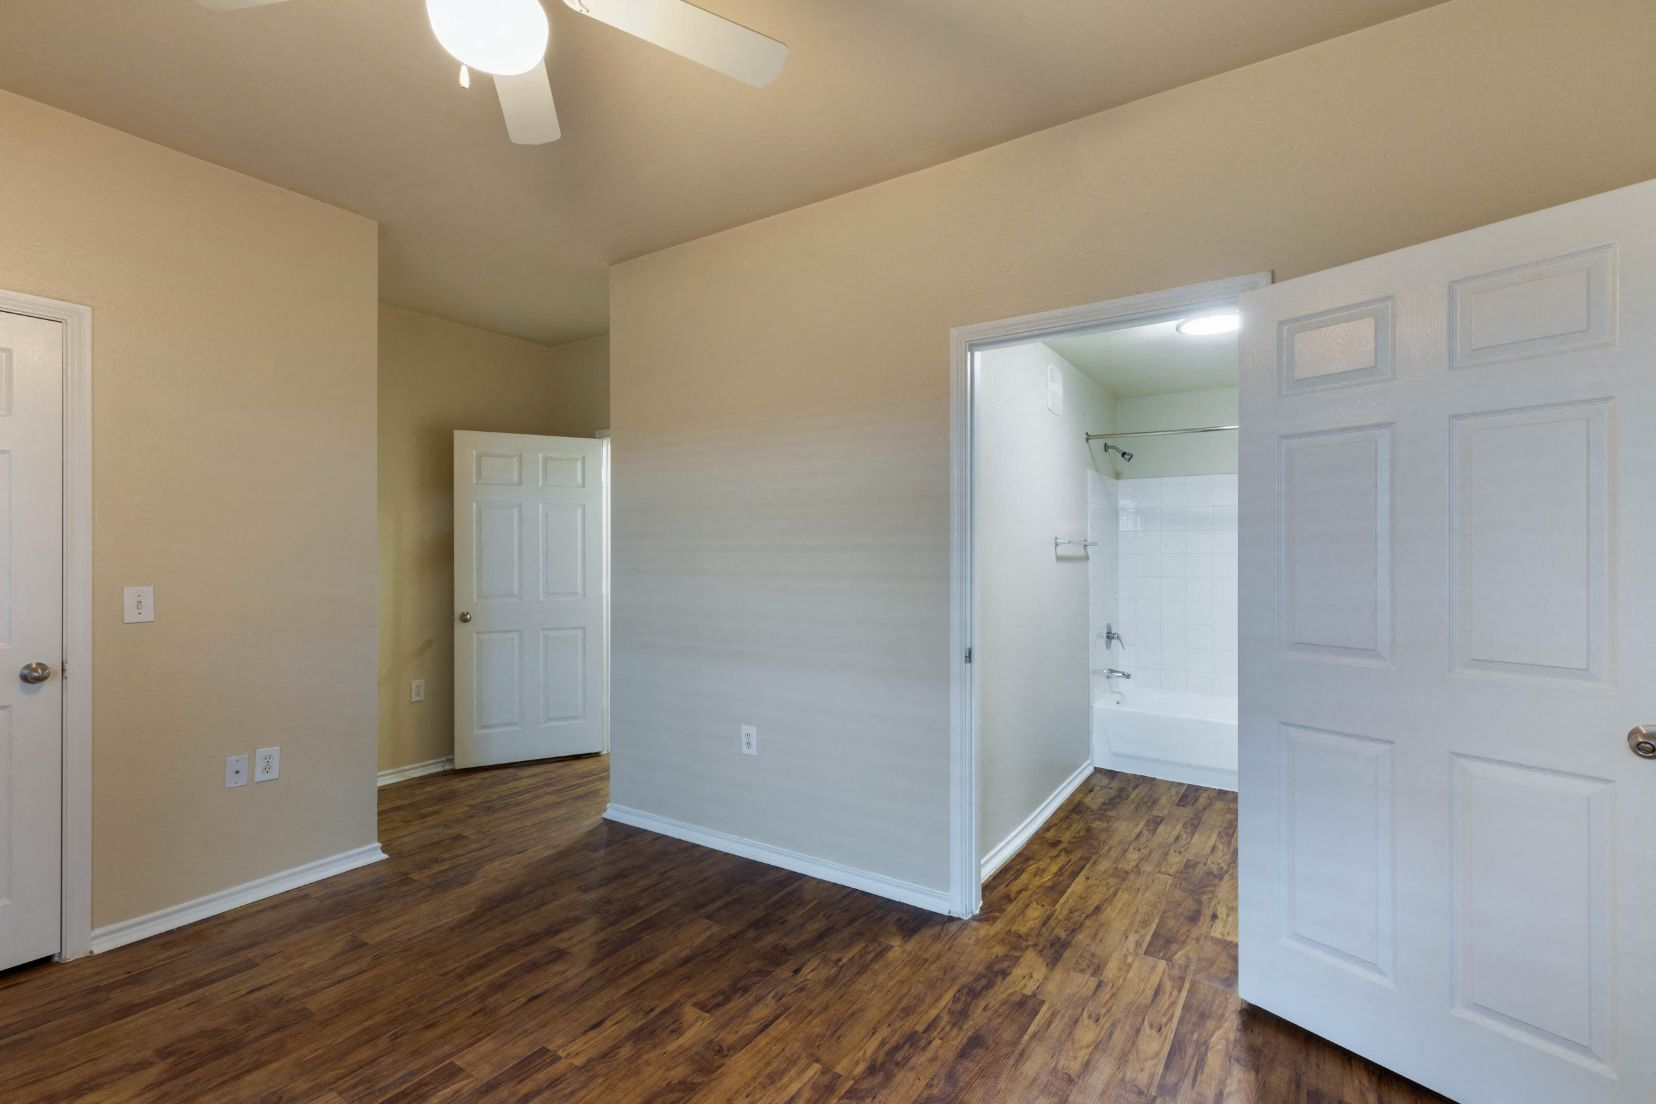 Living room with hallway and hardwood floors